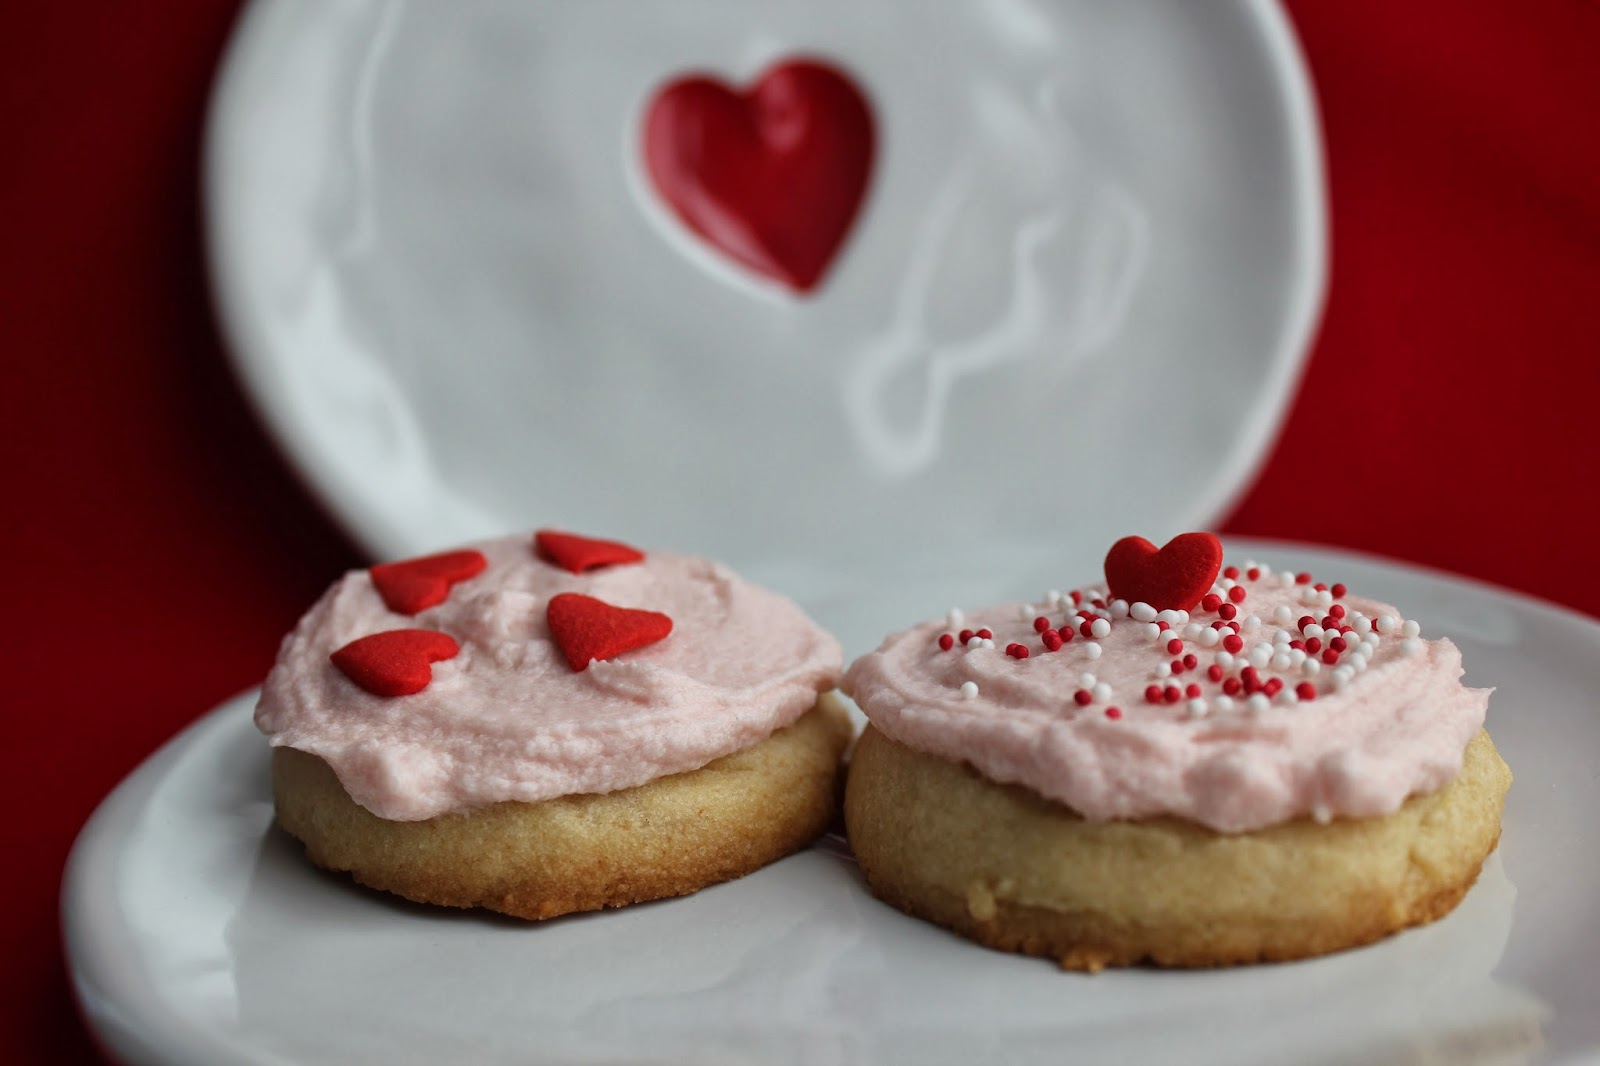 Valentine's Day sugar cookies and heart plates